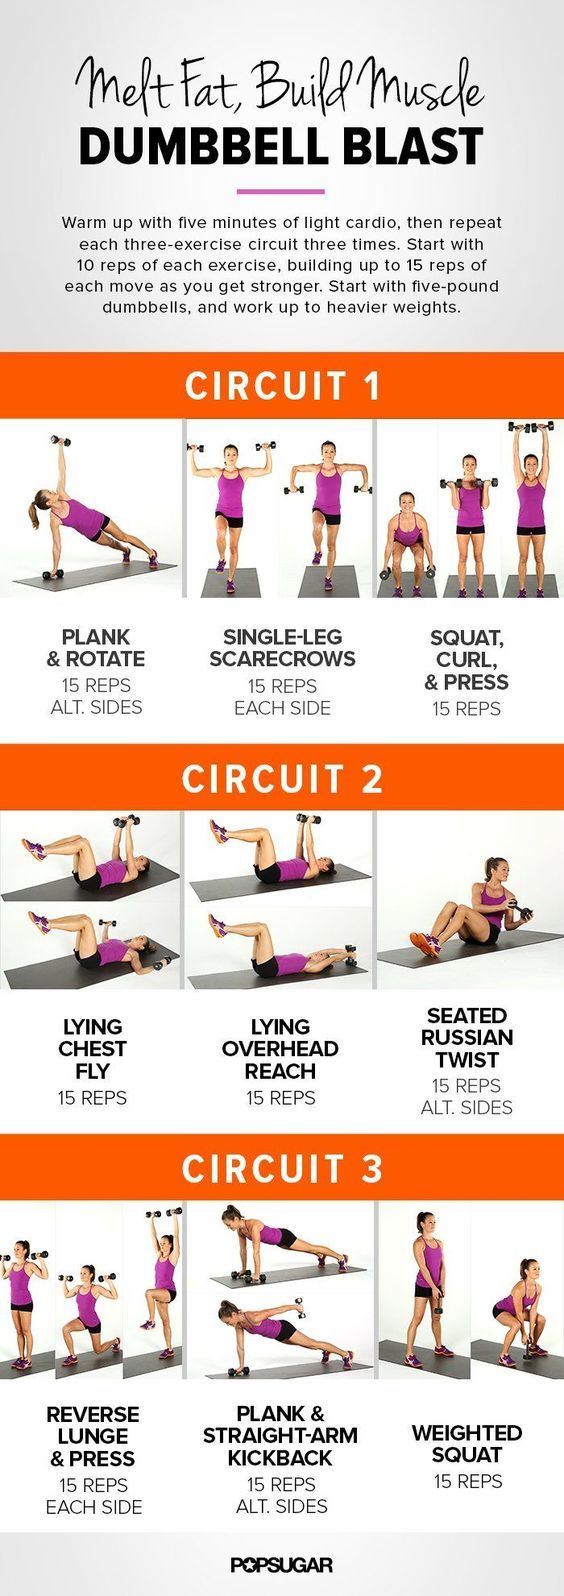 Discover the benefits of dumbbell blast and other gym workouts to lose weight for beginners in this helpful post. | gym routine for weight loss and toning | fat burning workout for men and women | gym routine for weight loss and toning | best fat exercise for fat loss in stomach #keepingfit #healthier #healthyliving #workouts #exercise #fitnessgoals #weightloss